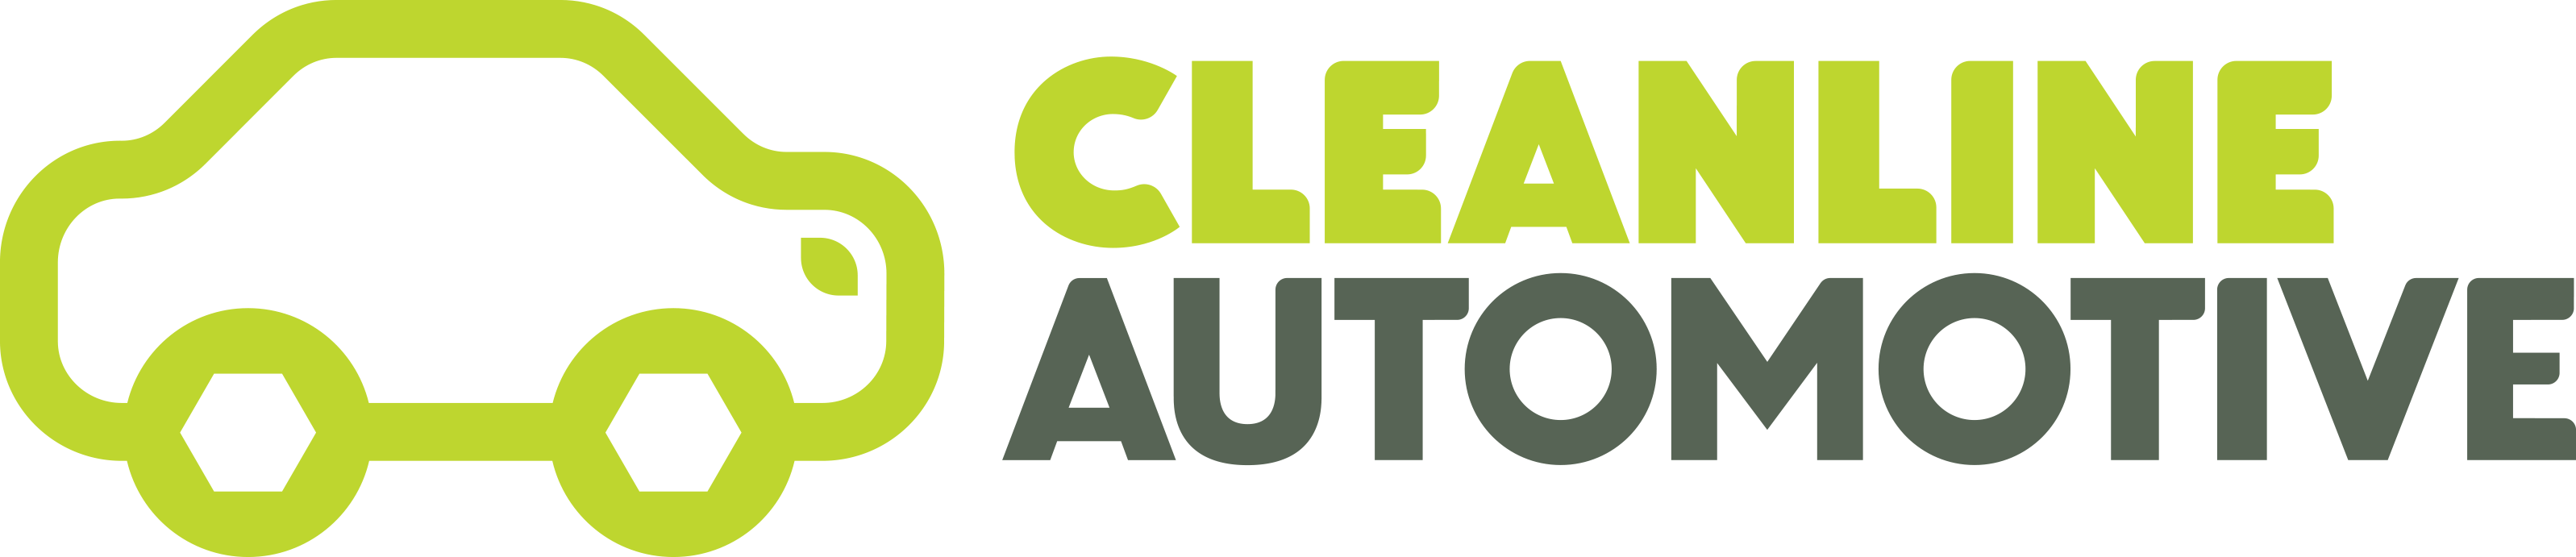 Cleanline_logo.png